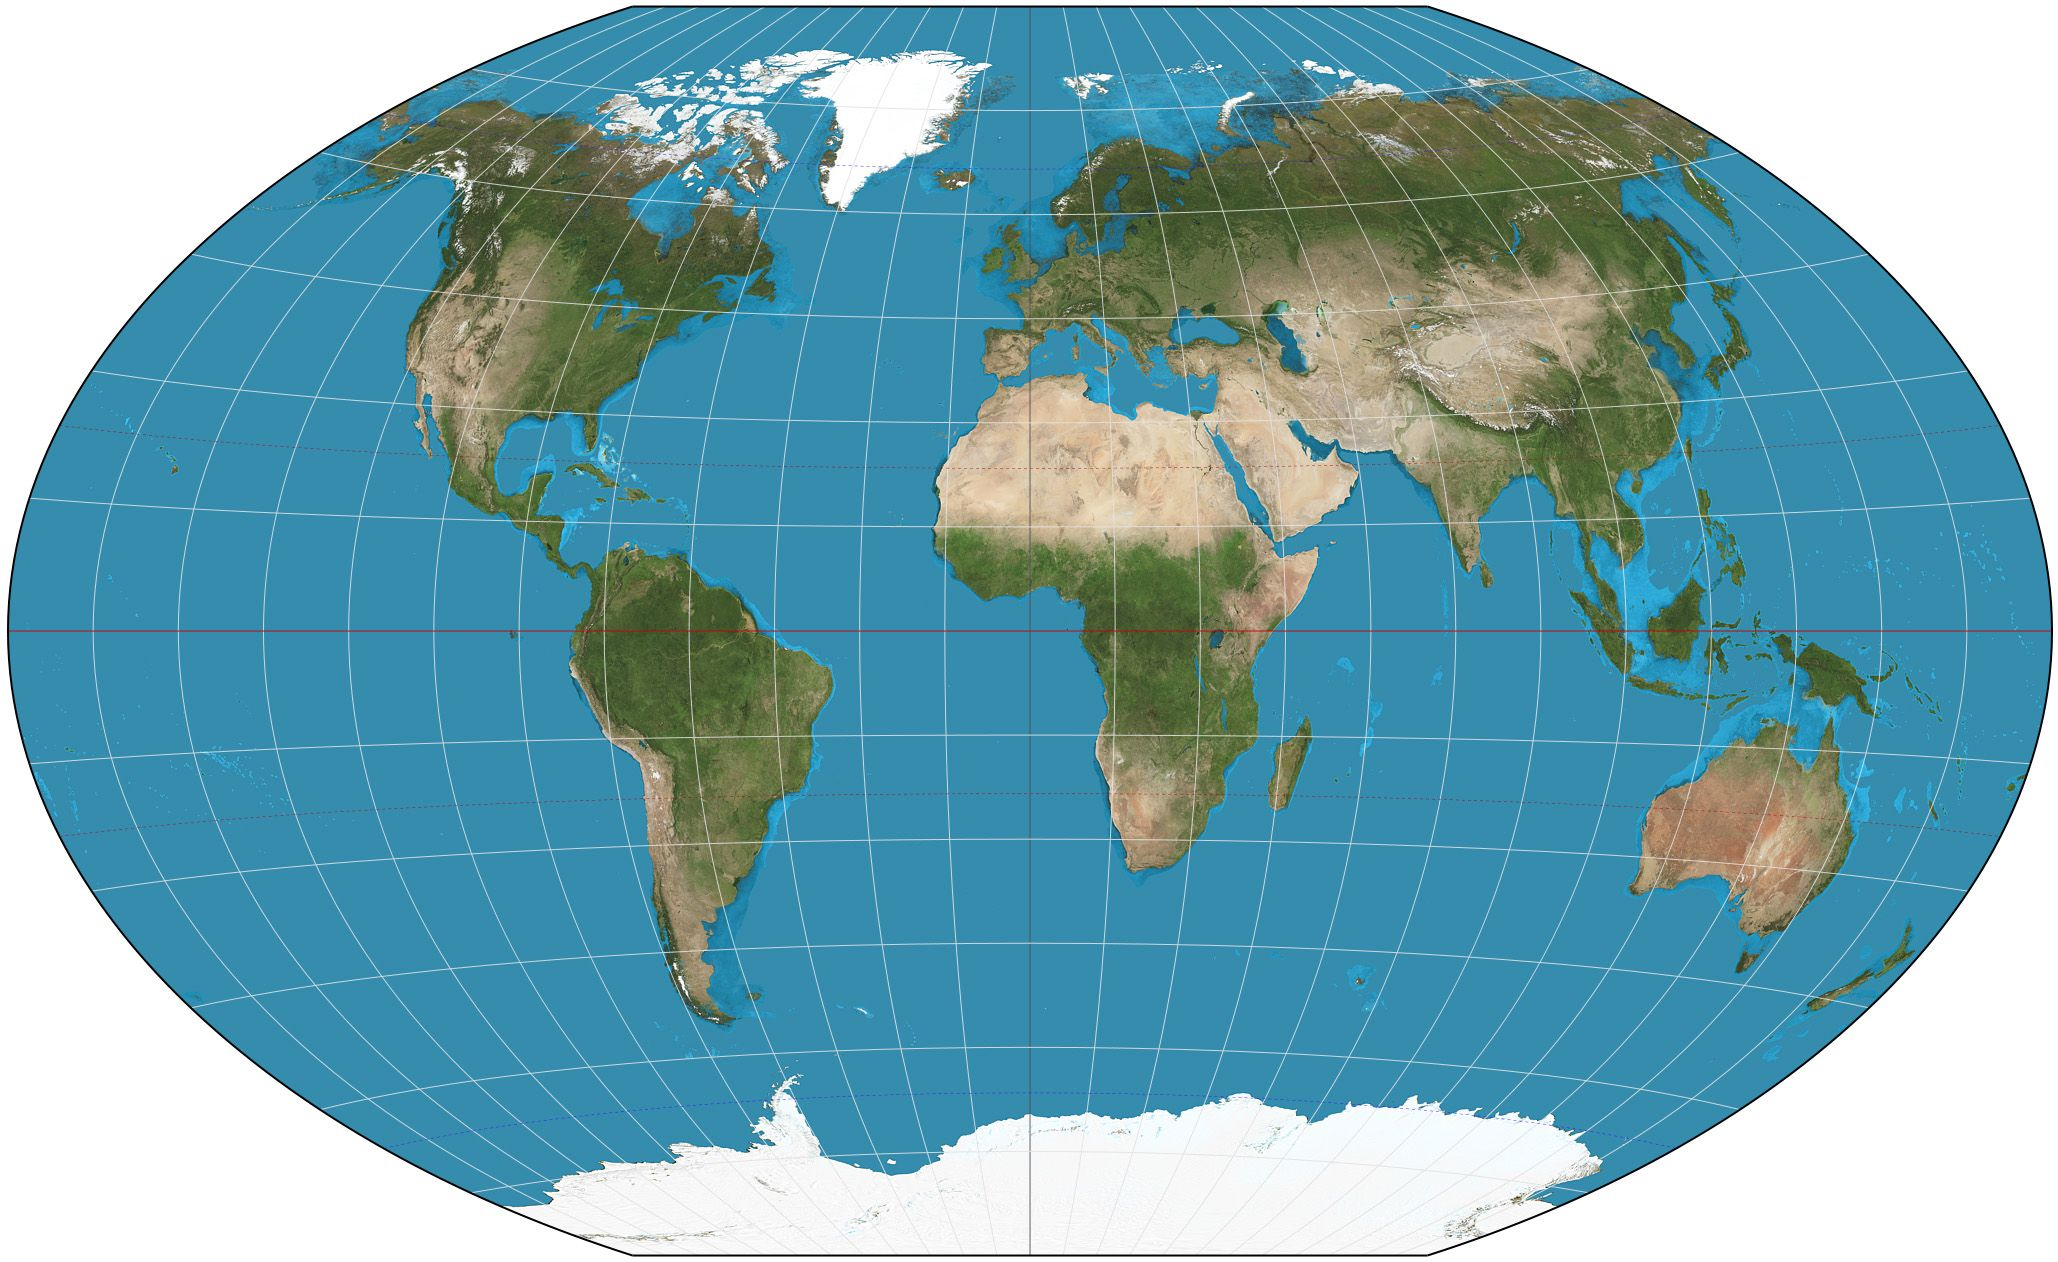 World map hd wallpapers download free world map tumblr pinterest world map hd wallpapers download free world map tumblr pinterest hd wallpapers gumiabroncs Images